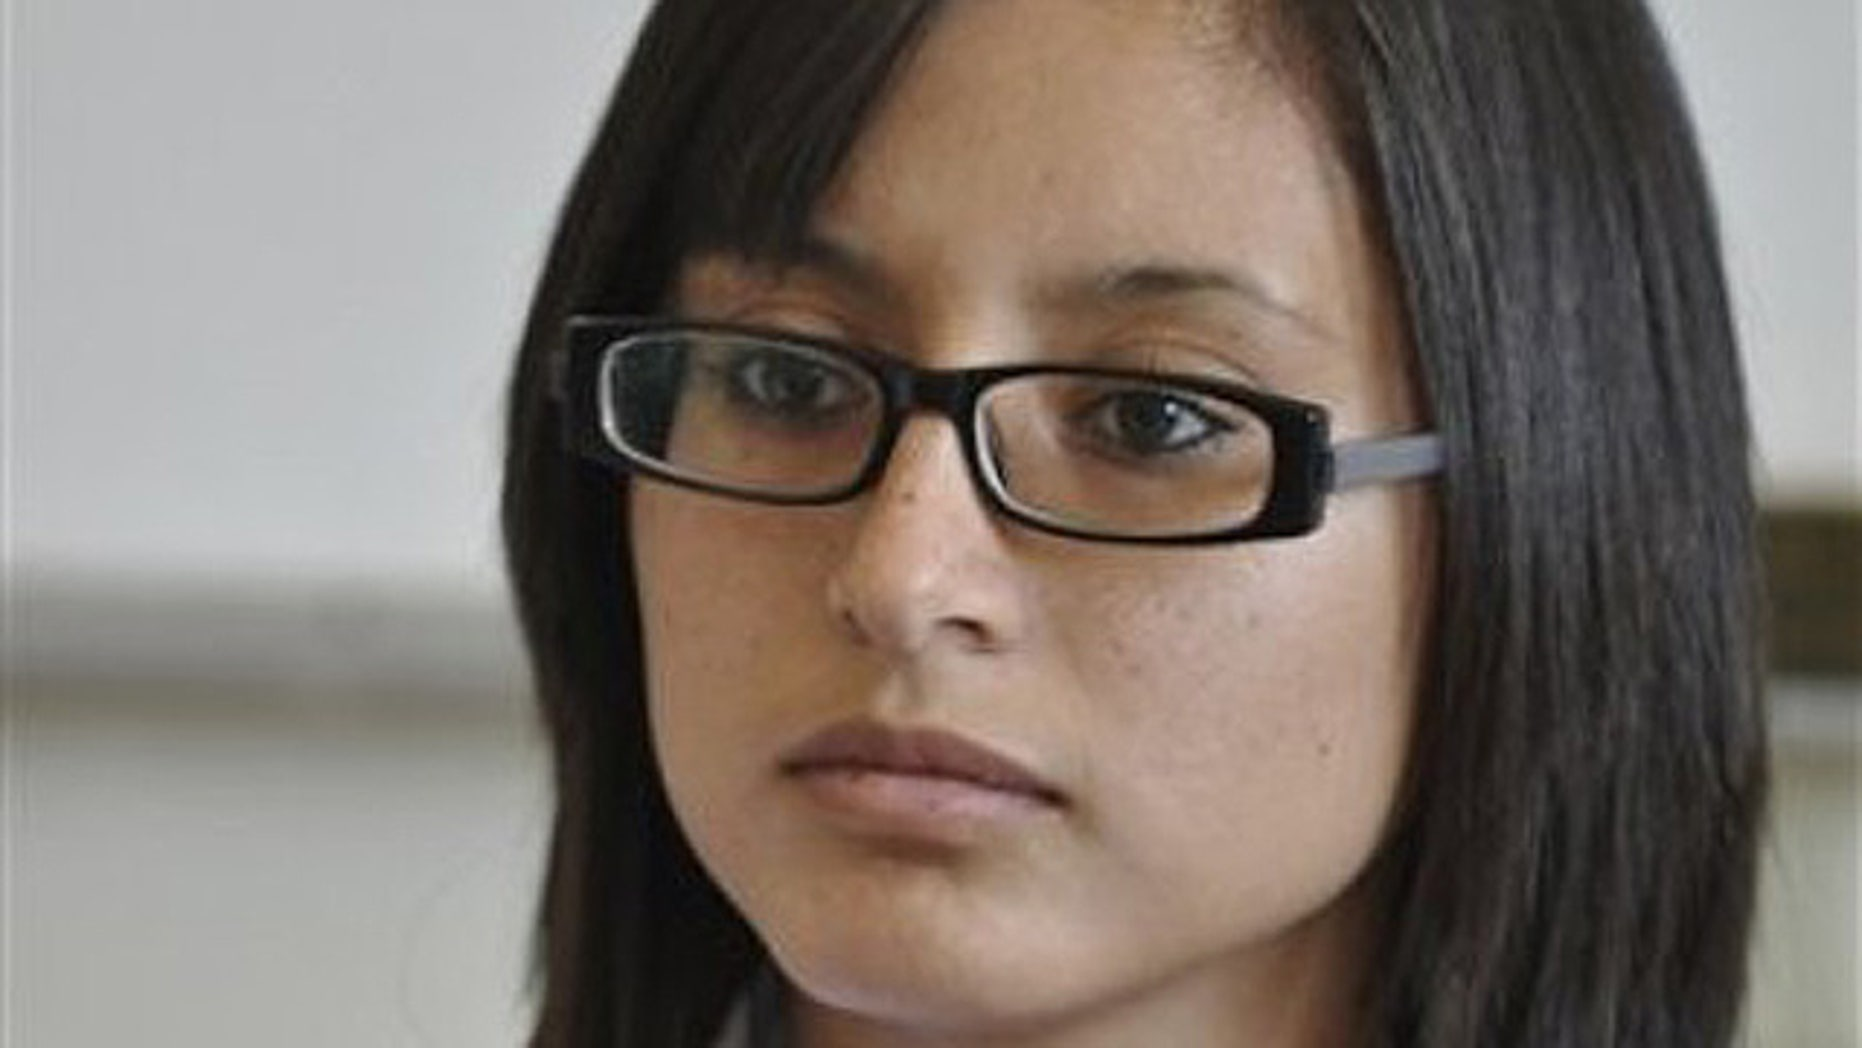 Oct. 20, 2010: Twenty-year-old Marisol Valles Garcia listens to a question during a news conference after her swearing-in ceremony as the new police chief of the border town of Praxedis G. Guerrero, near Ciudad Juarez, Mexico. (AP)